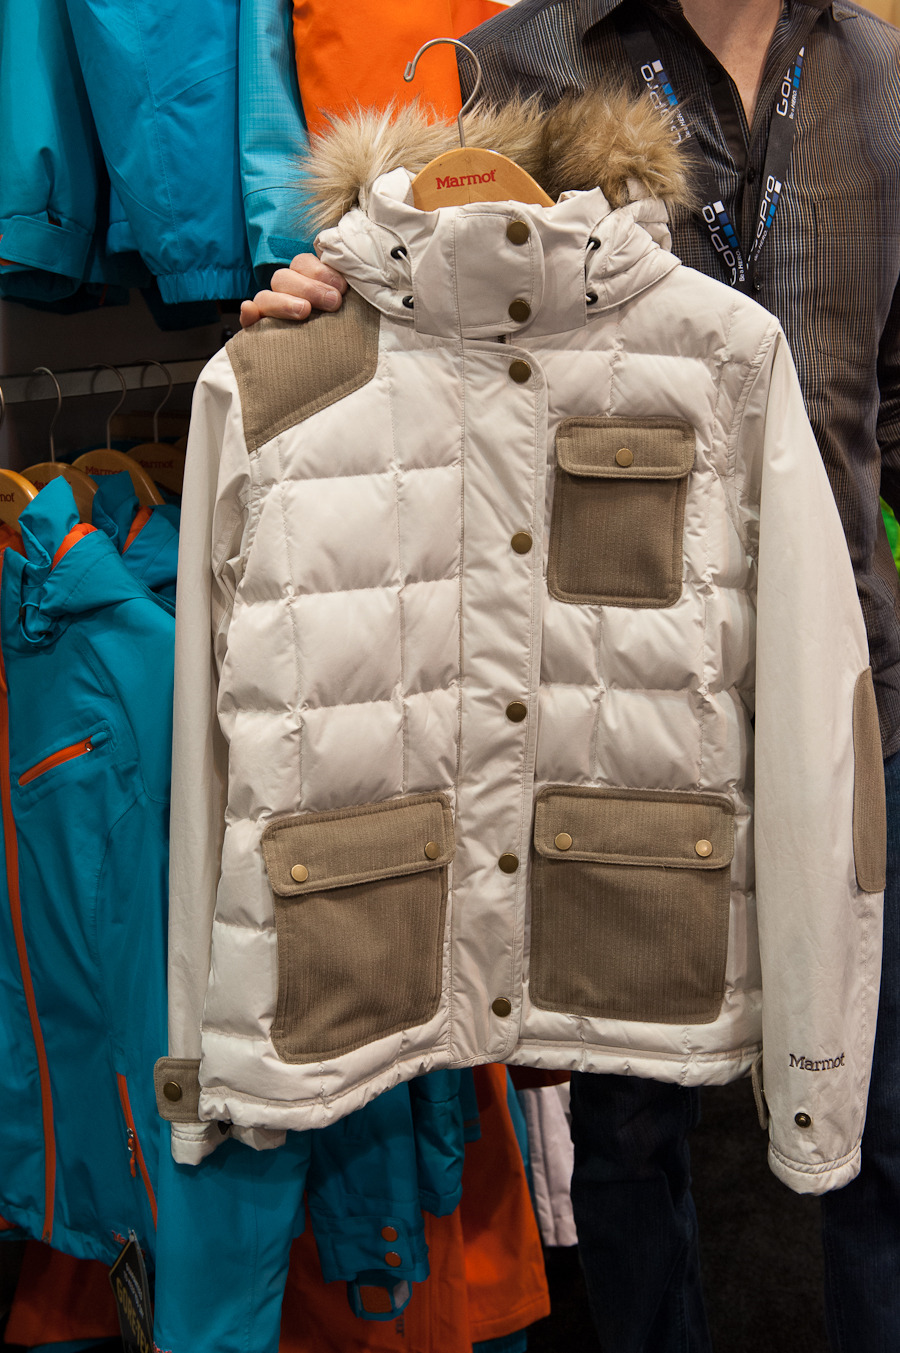 Marmot's Fab down jacket is complete with 650 fill down and pockets that have corduroy-like fabric for added comfort. It also comes with a faux fur collar and removable hood.